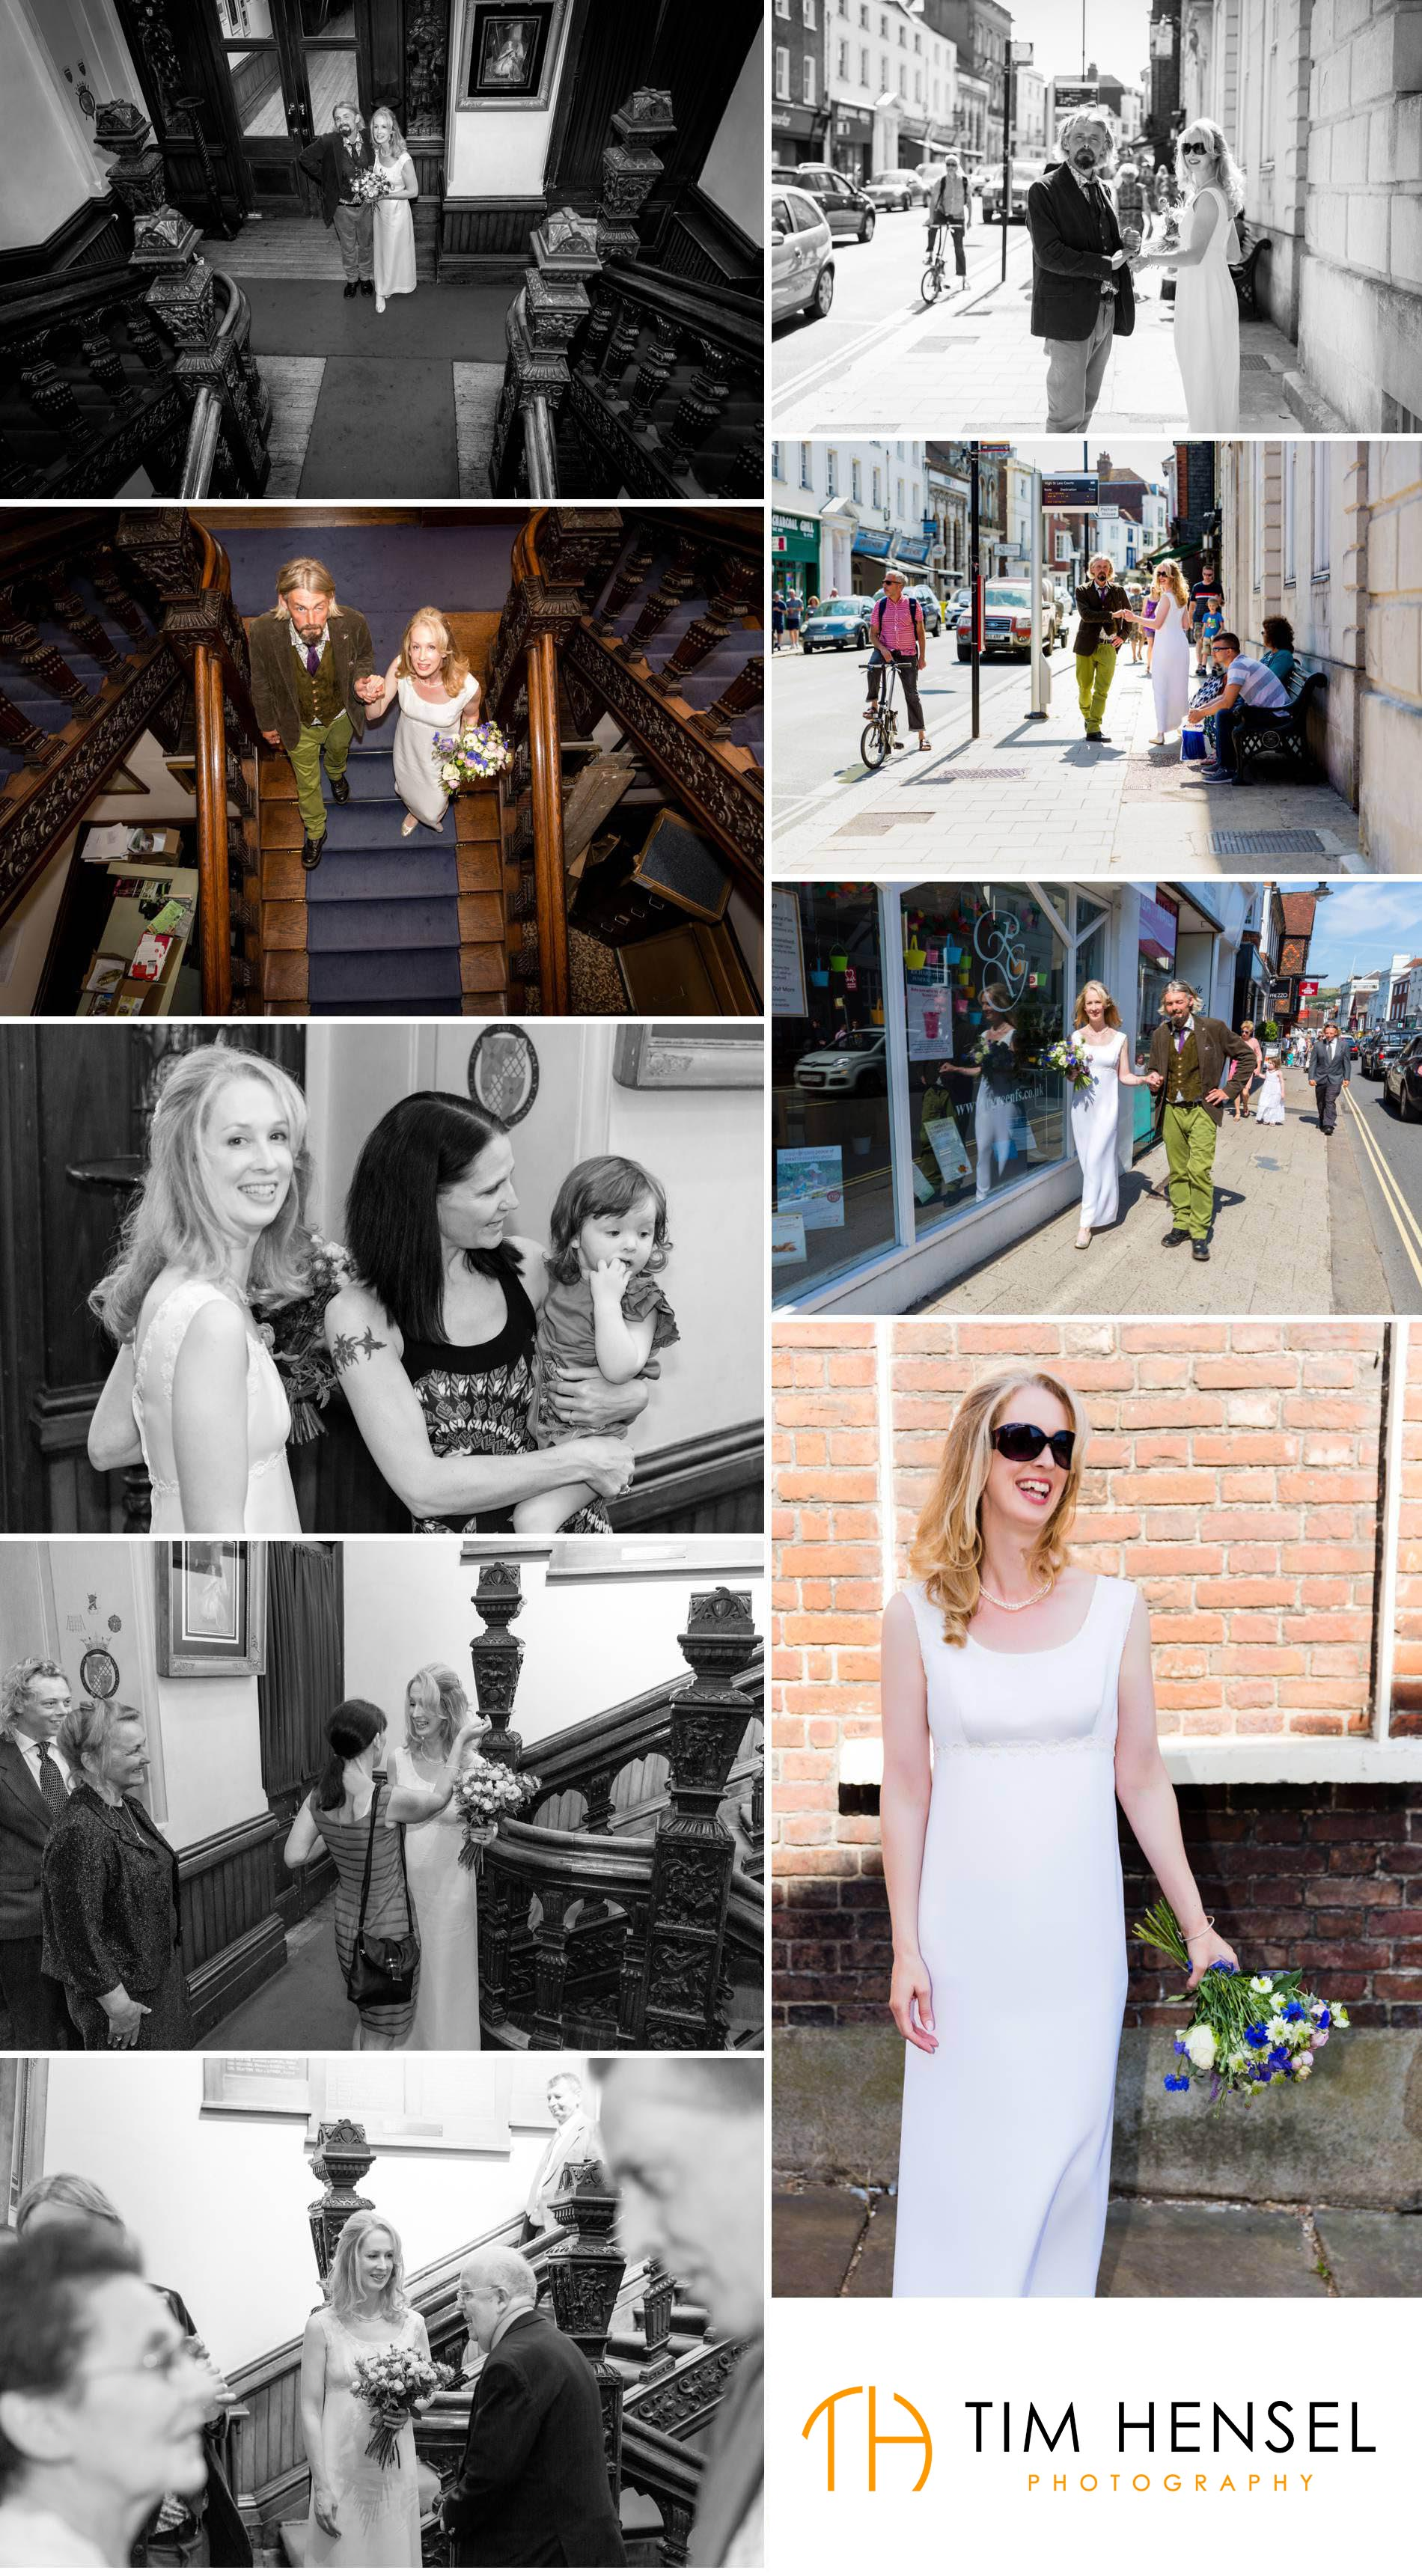 Wedding photographer in sussex for natural photos